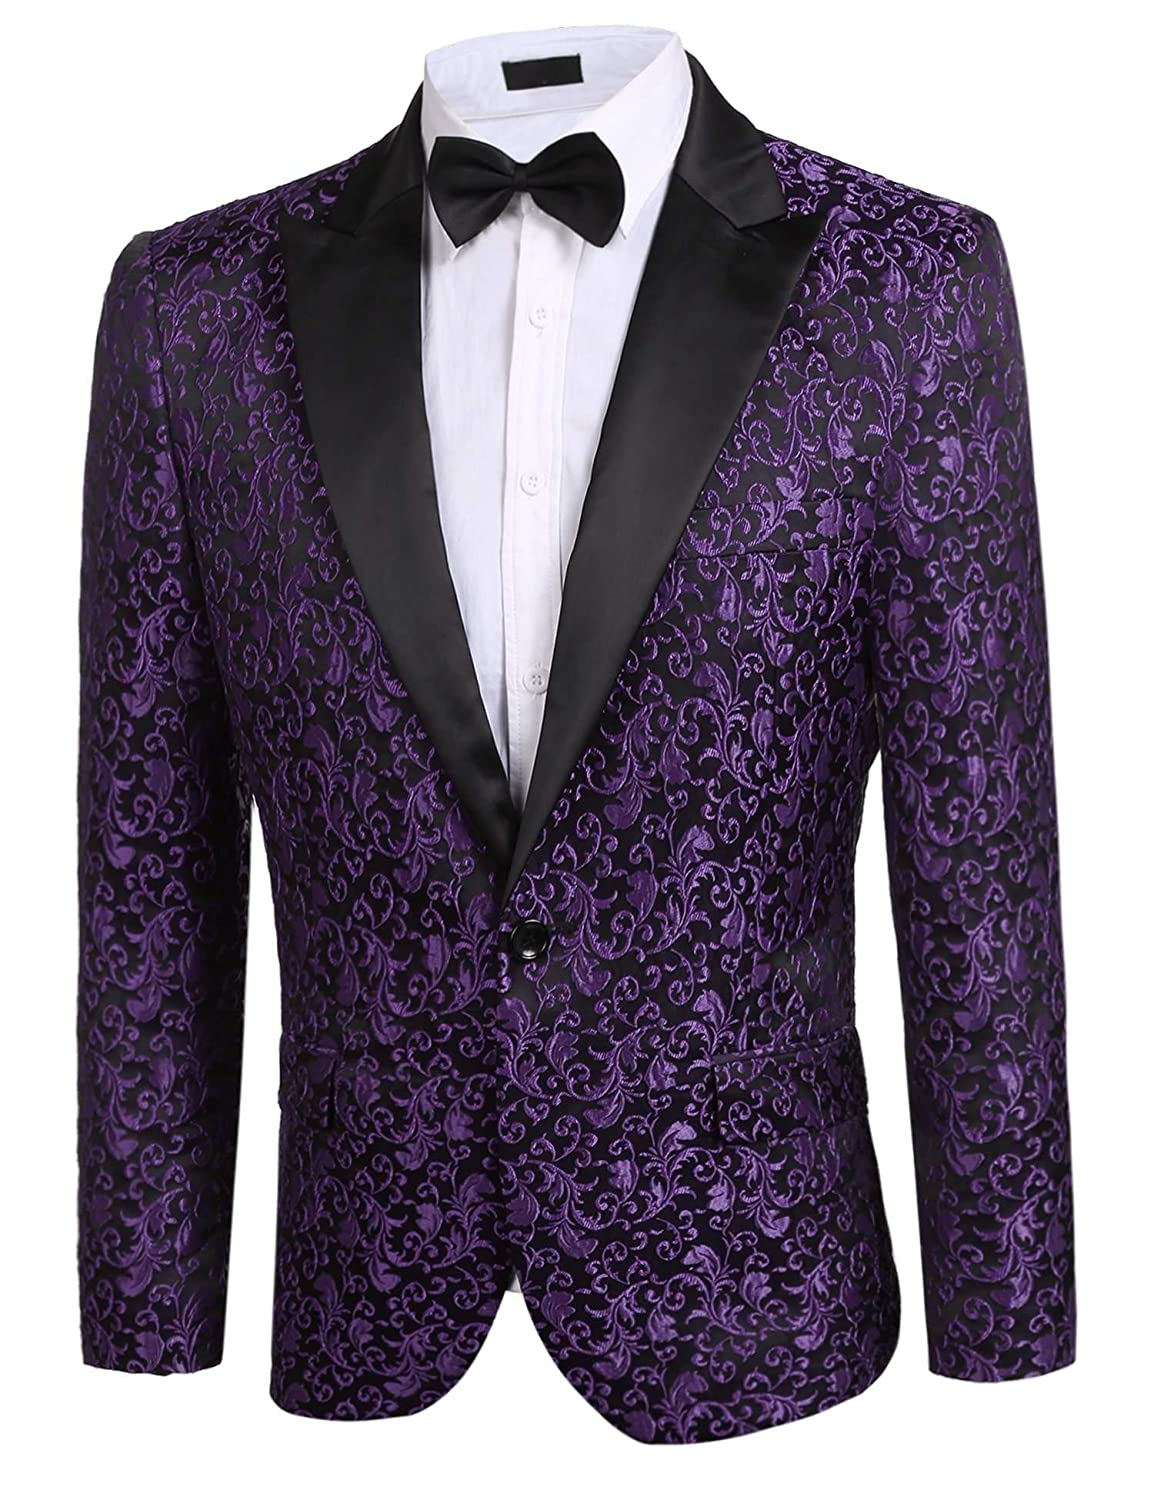 2531e65d [WHAT\'S THE UNIQUE PARTS] This Floral Tuxedo Jacket features the stain  notch lapel, fake pockets, one button closure, four-button cuffs each  sleeve, ...